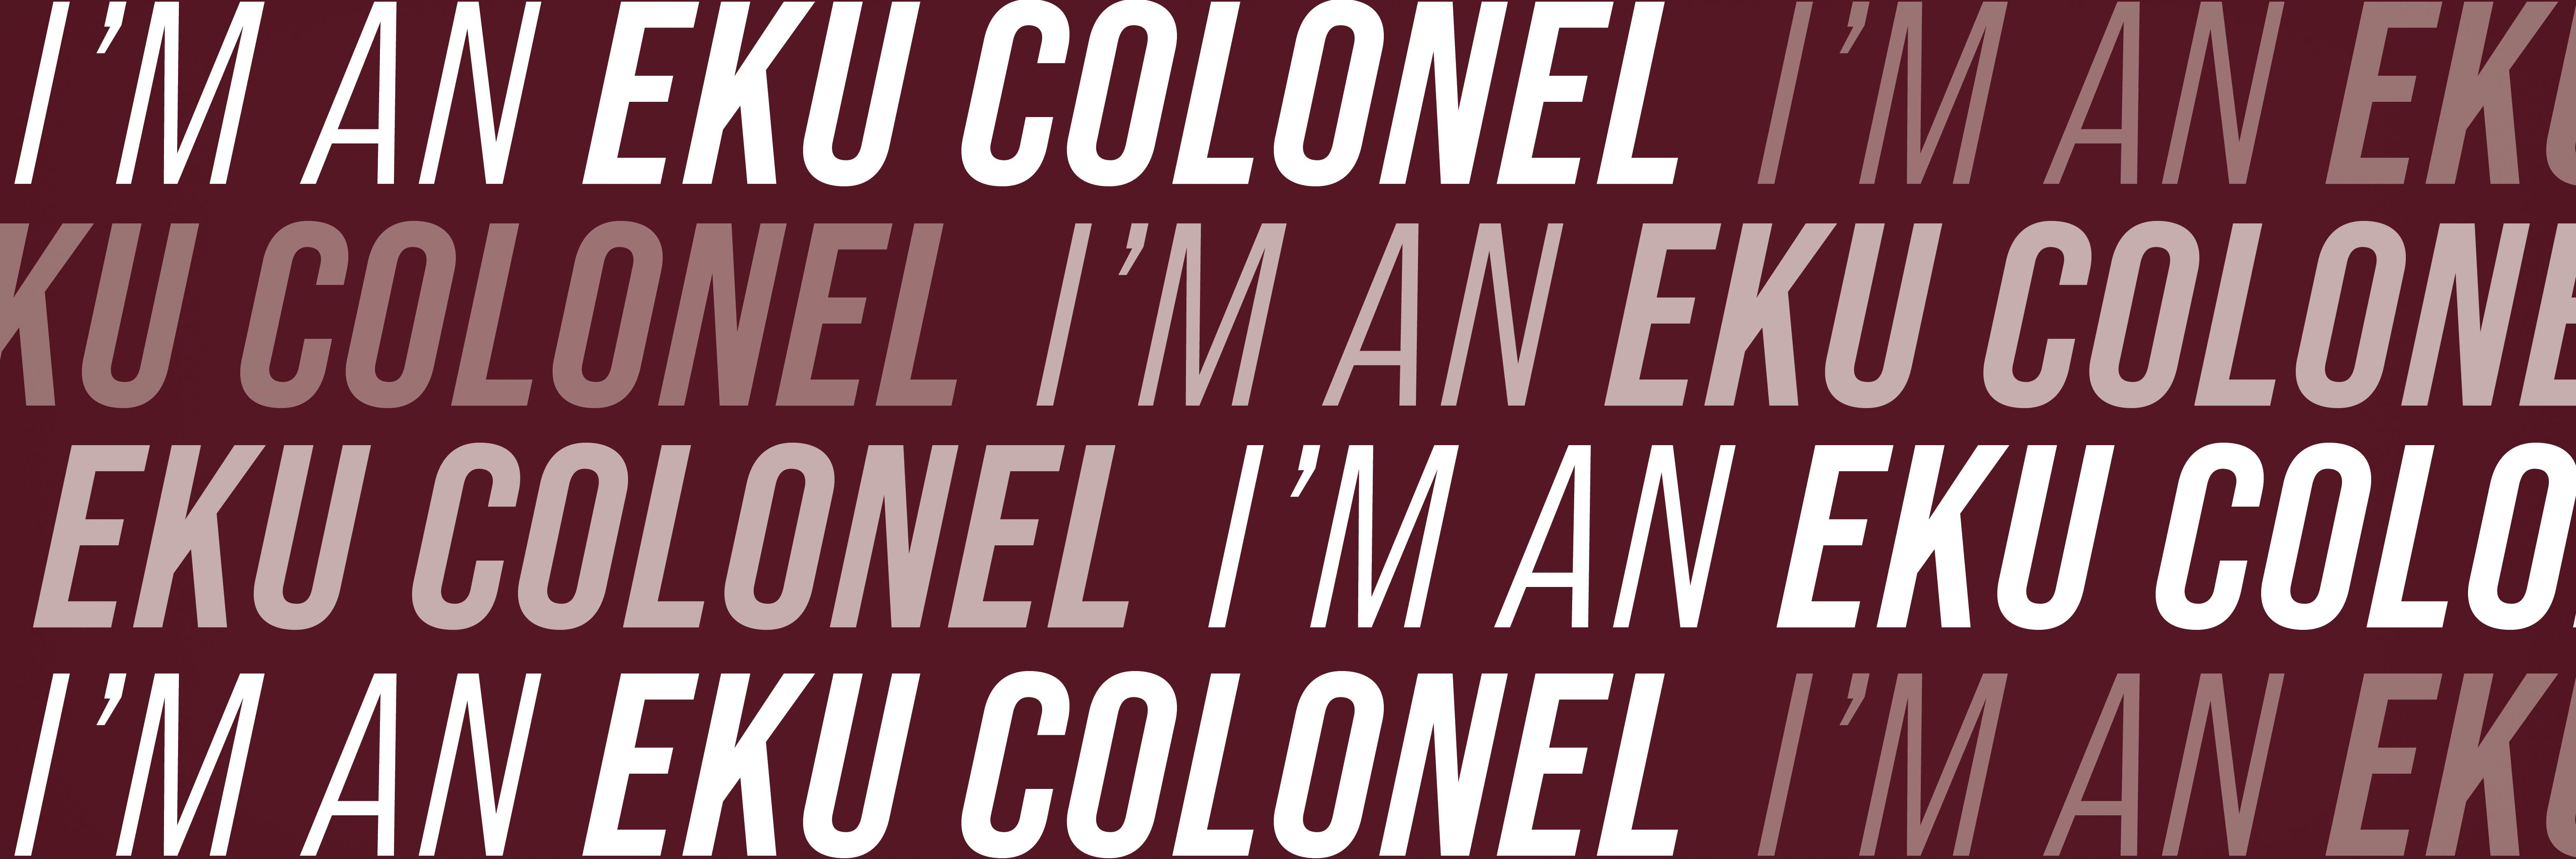 KU Colonel Twitter Cover 2